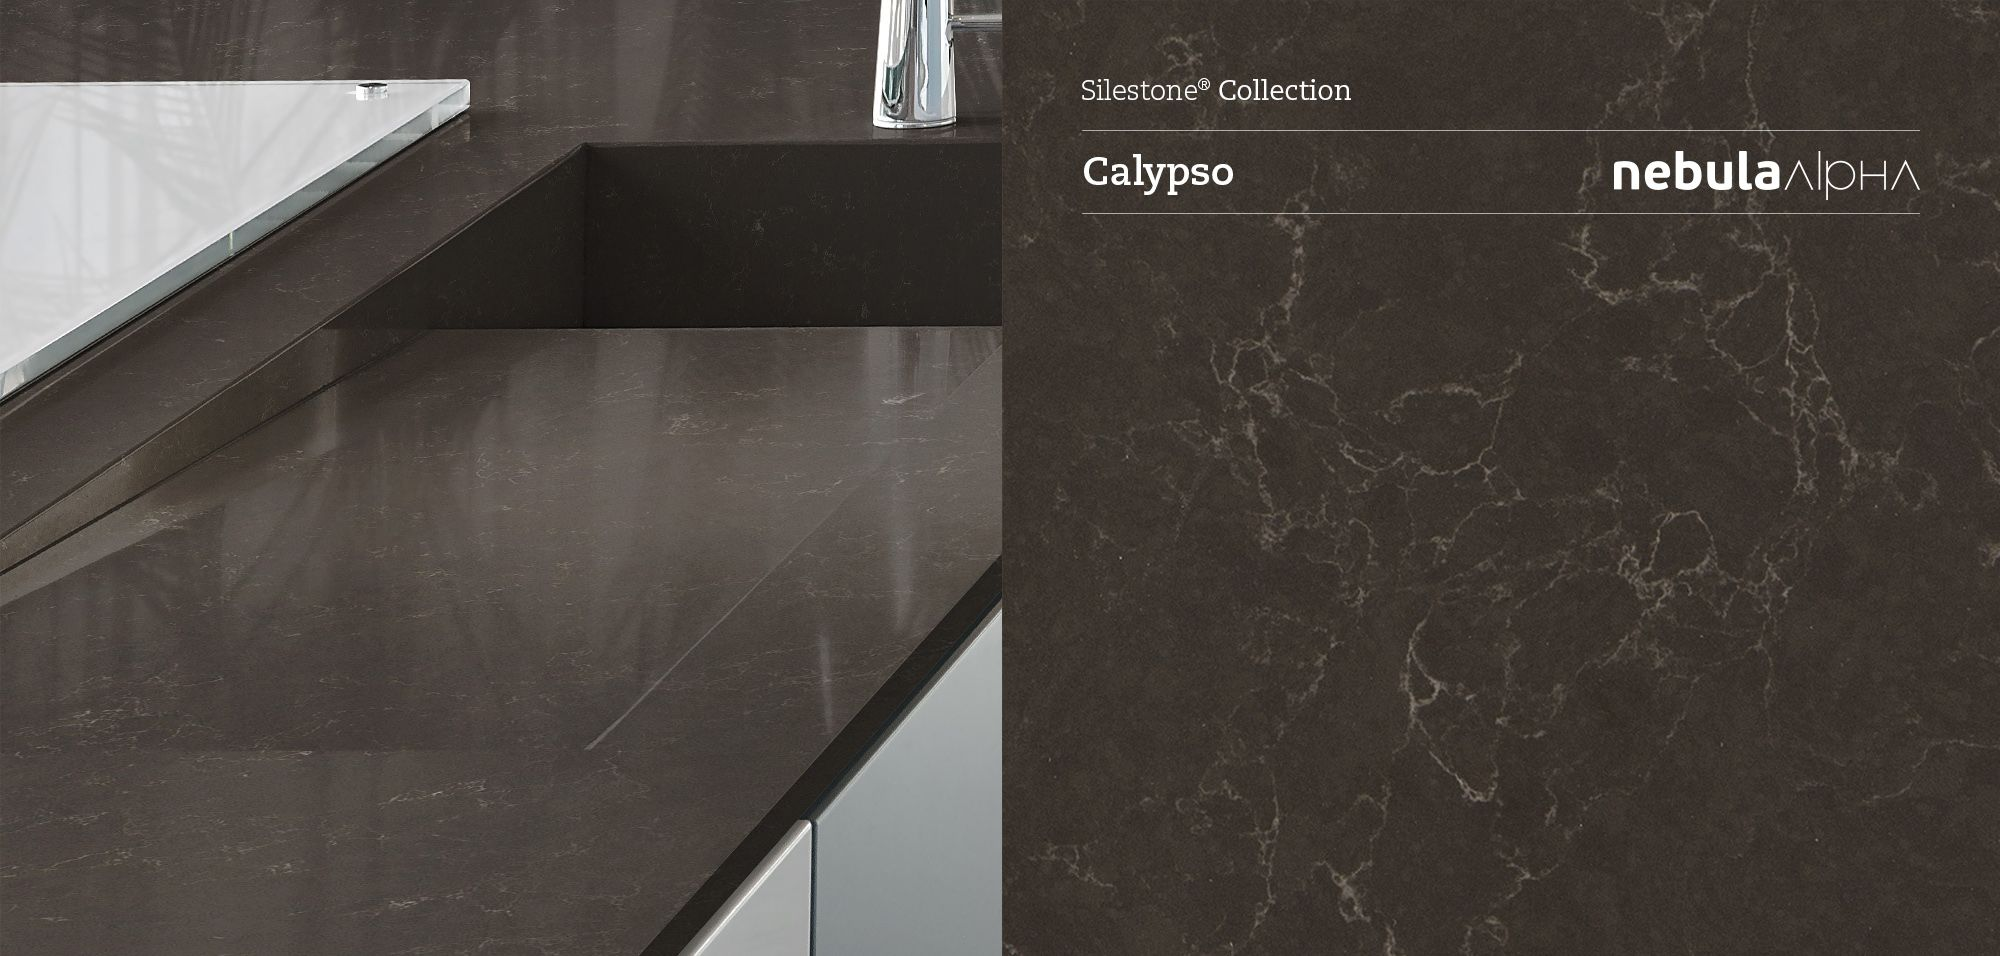 Silestone‬ Calypso Quot Nebula Alpha Series For The Kitchen